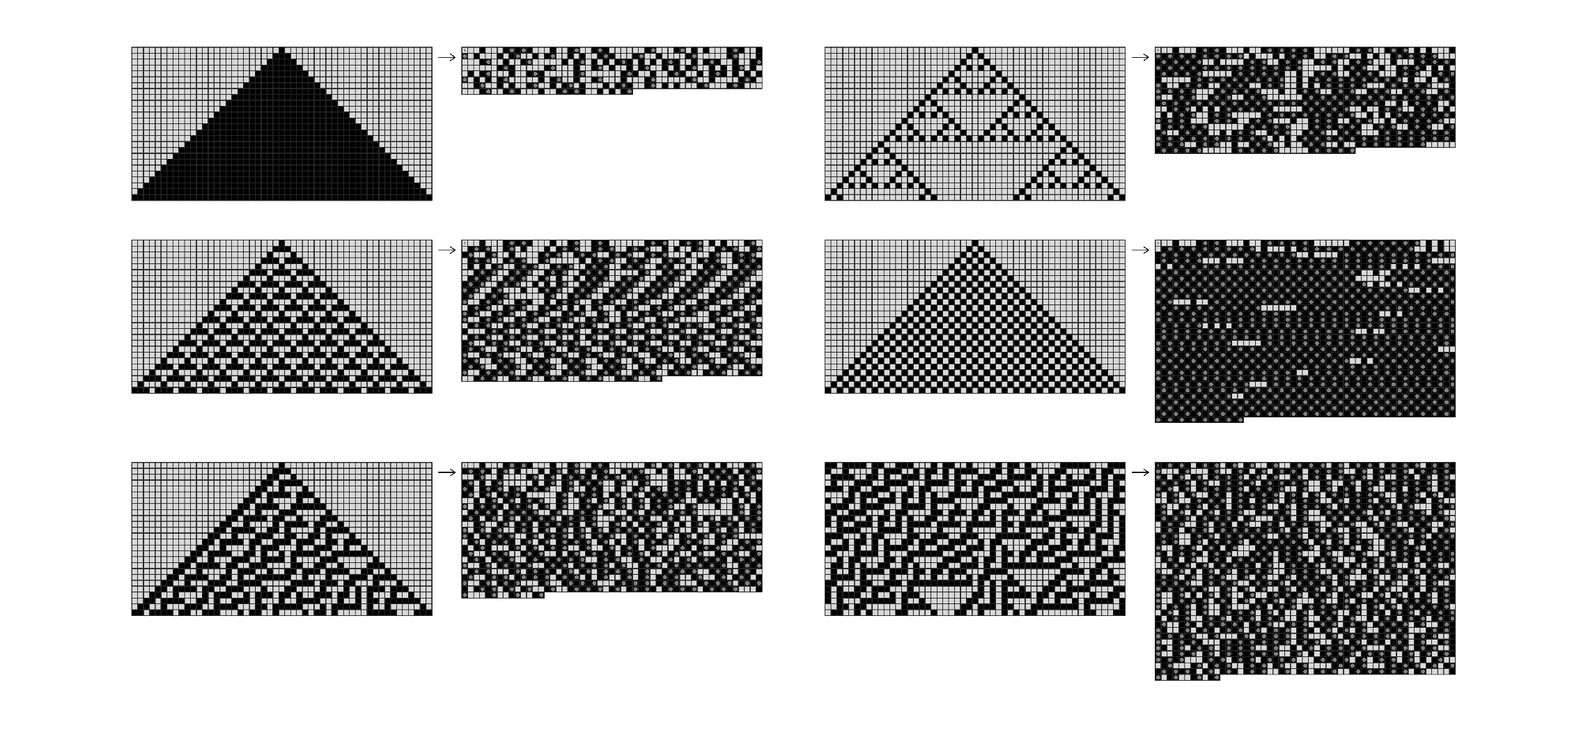 Examples of applying run-length encoding to patterns produced by cellular automata